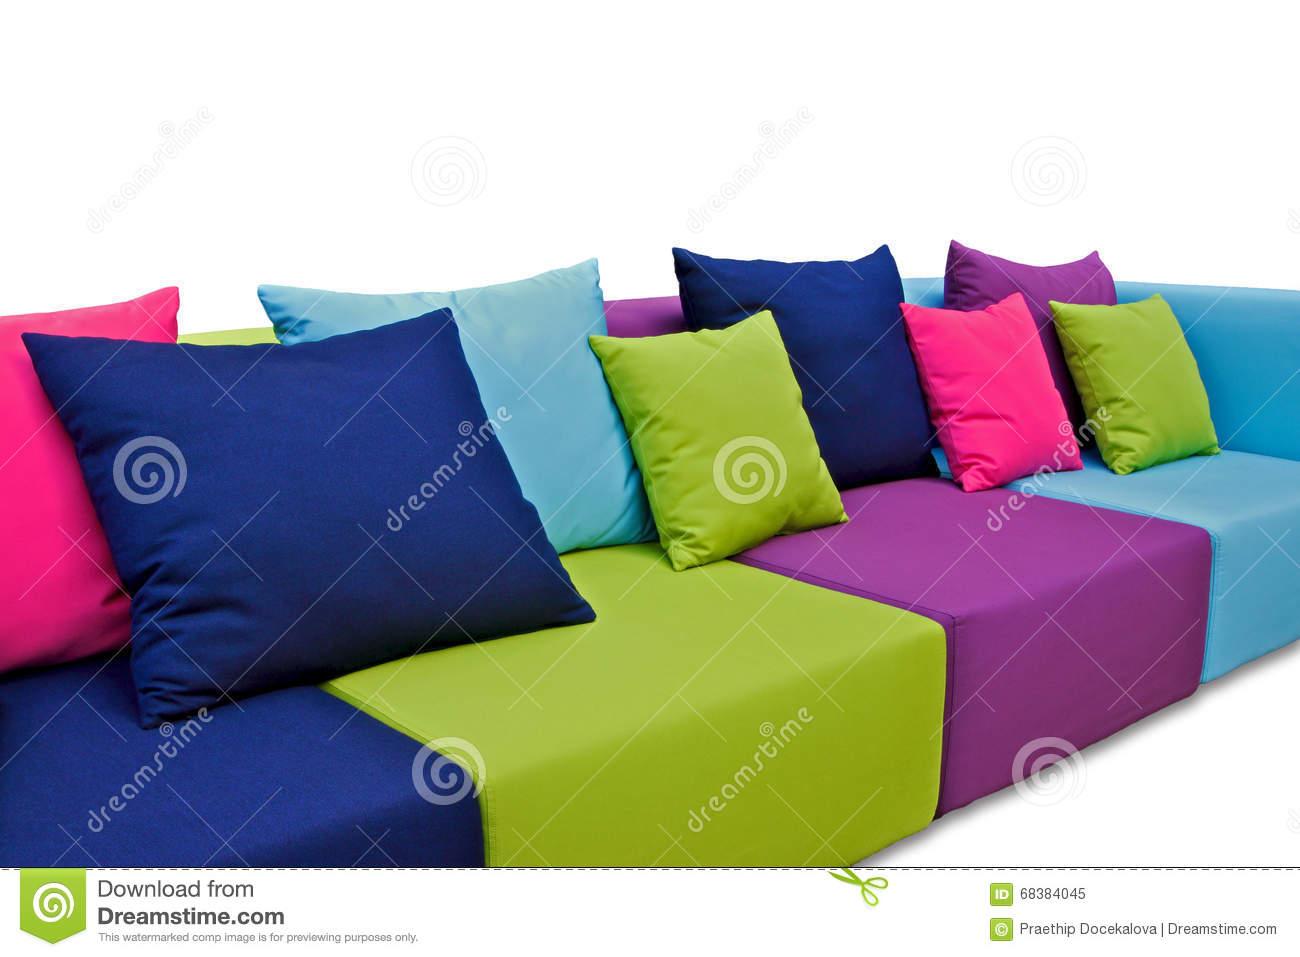 Indoor Outdoor Sofa Stock Photo - Image: 68384045